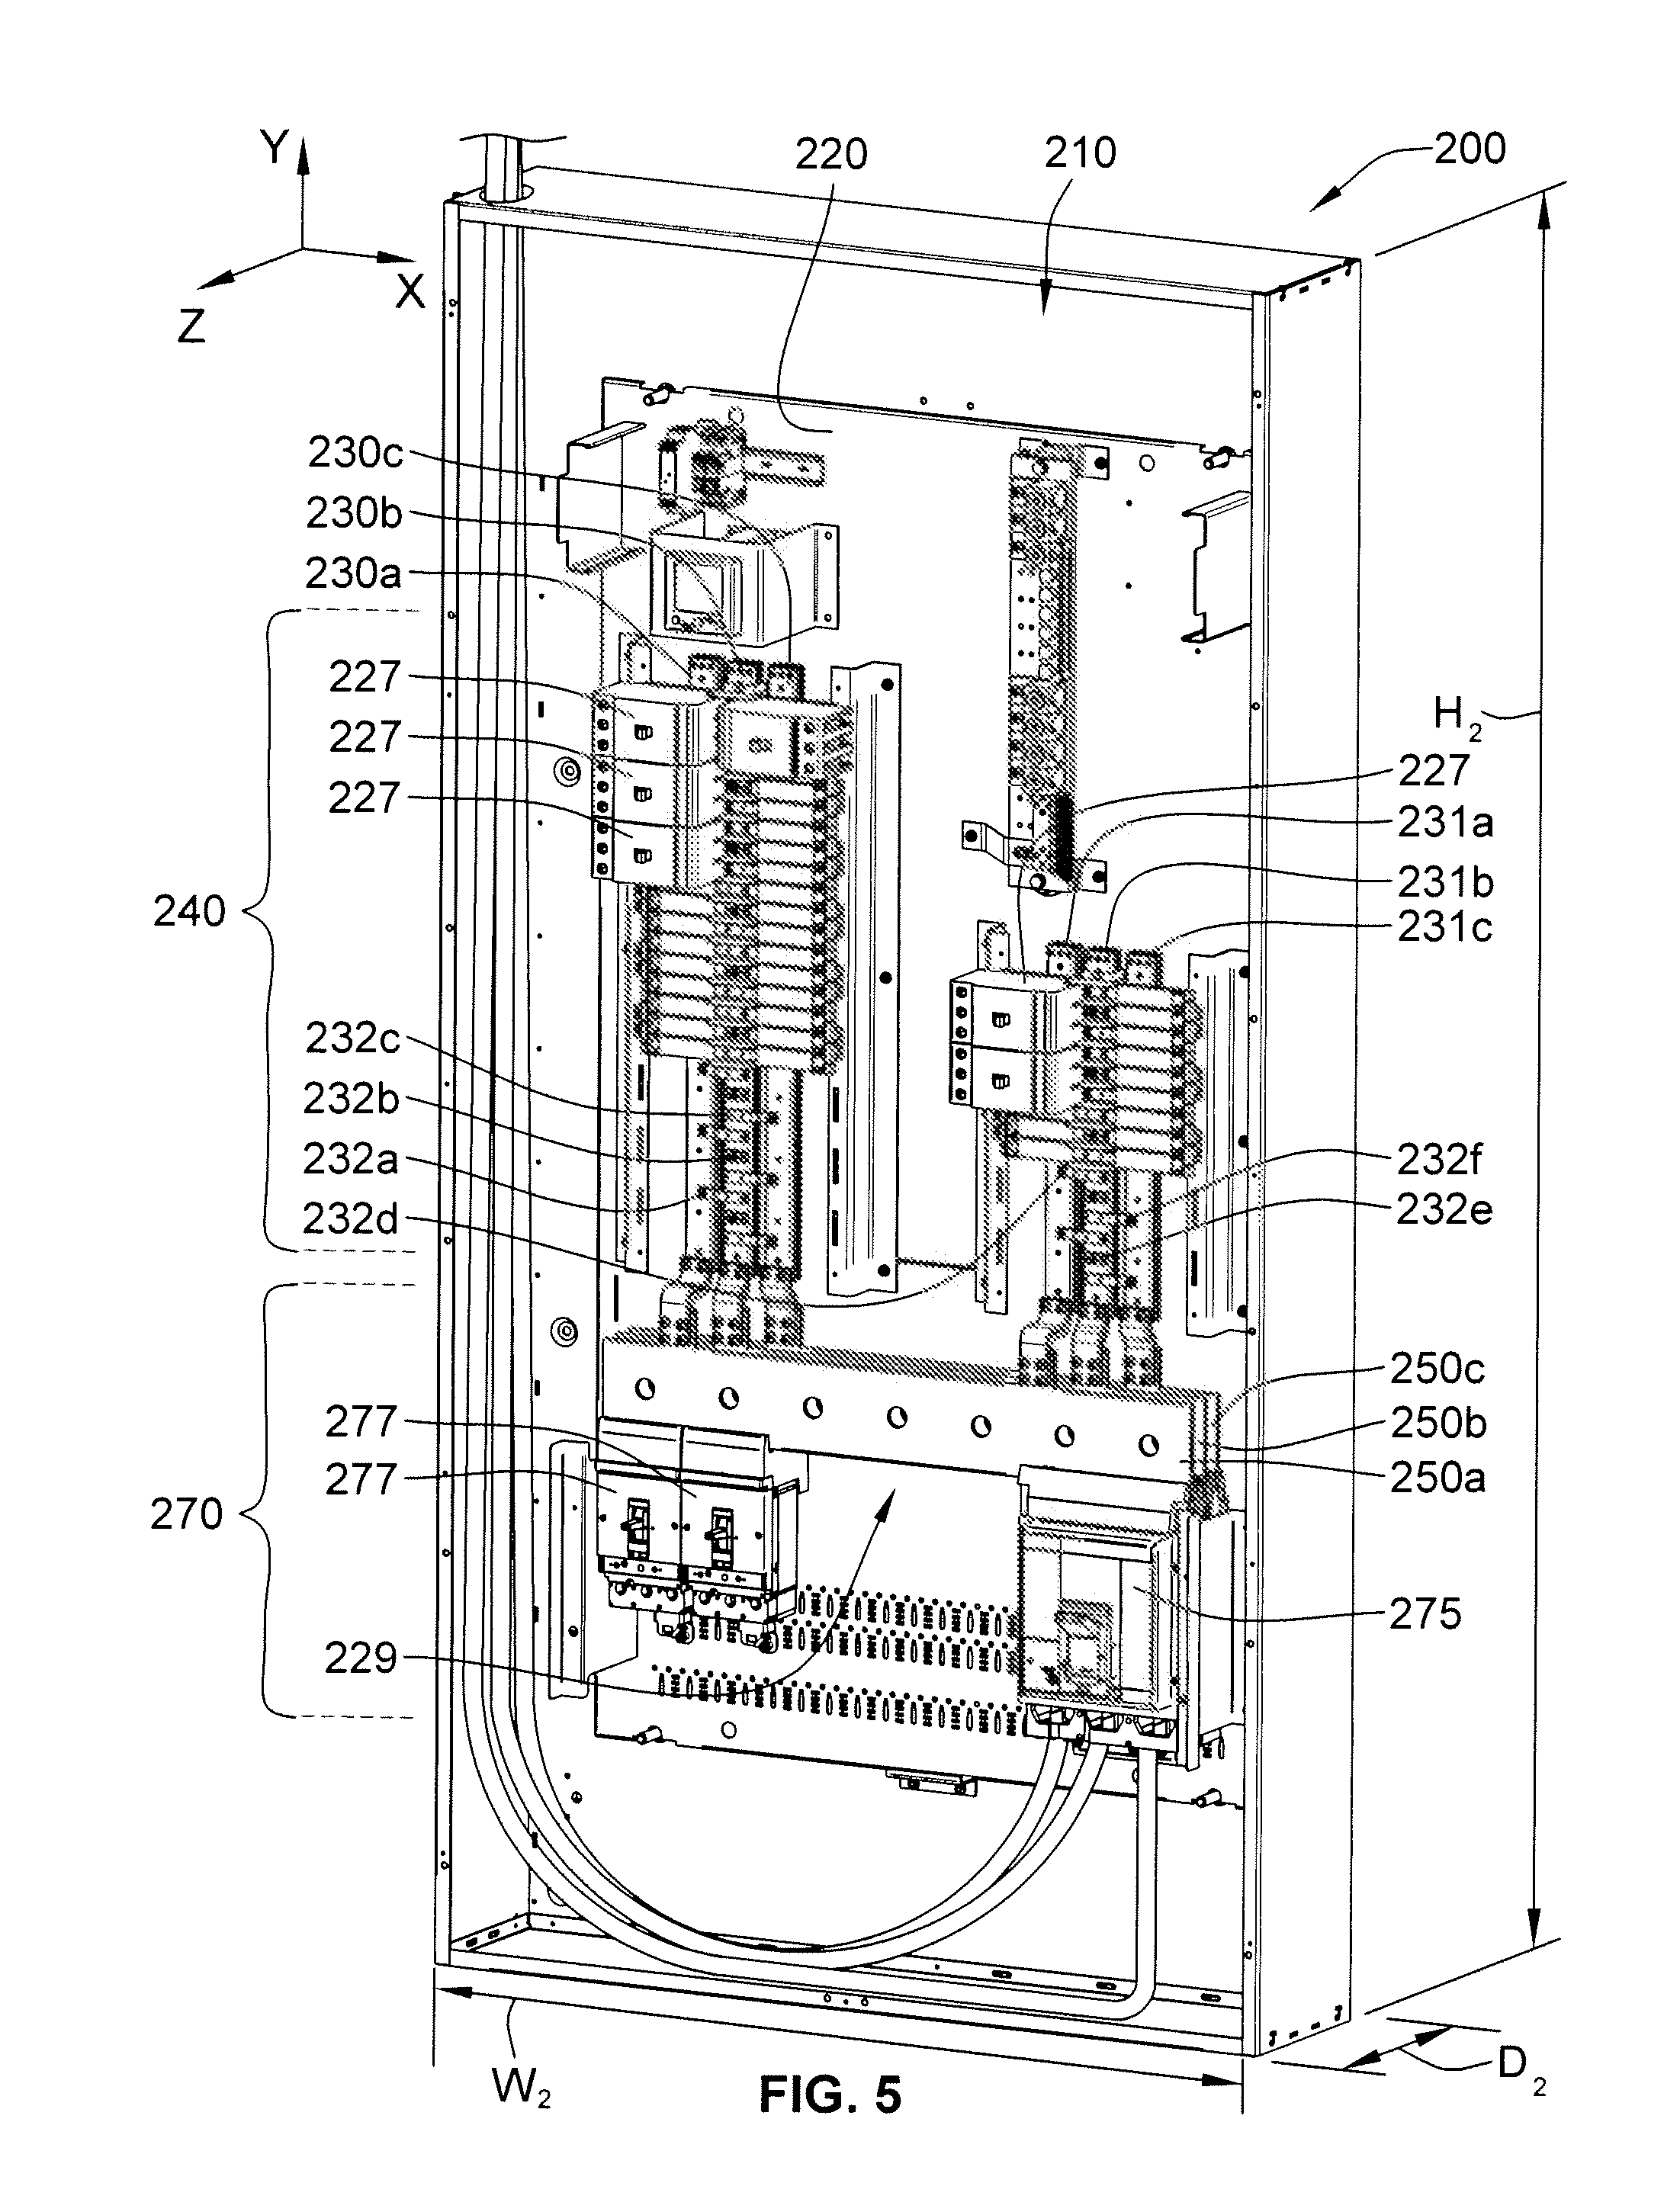 Slot Car Wire Diagram further 531785 together with E1eh017h Nordyne Electric Furnace Parts together with 1s2rr Need Diagram Fuse Panel 93 Jeep Grand Cherokee also Mercruiser Engine Wiring Harness. on wiring diagram for 40 amp breaker